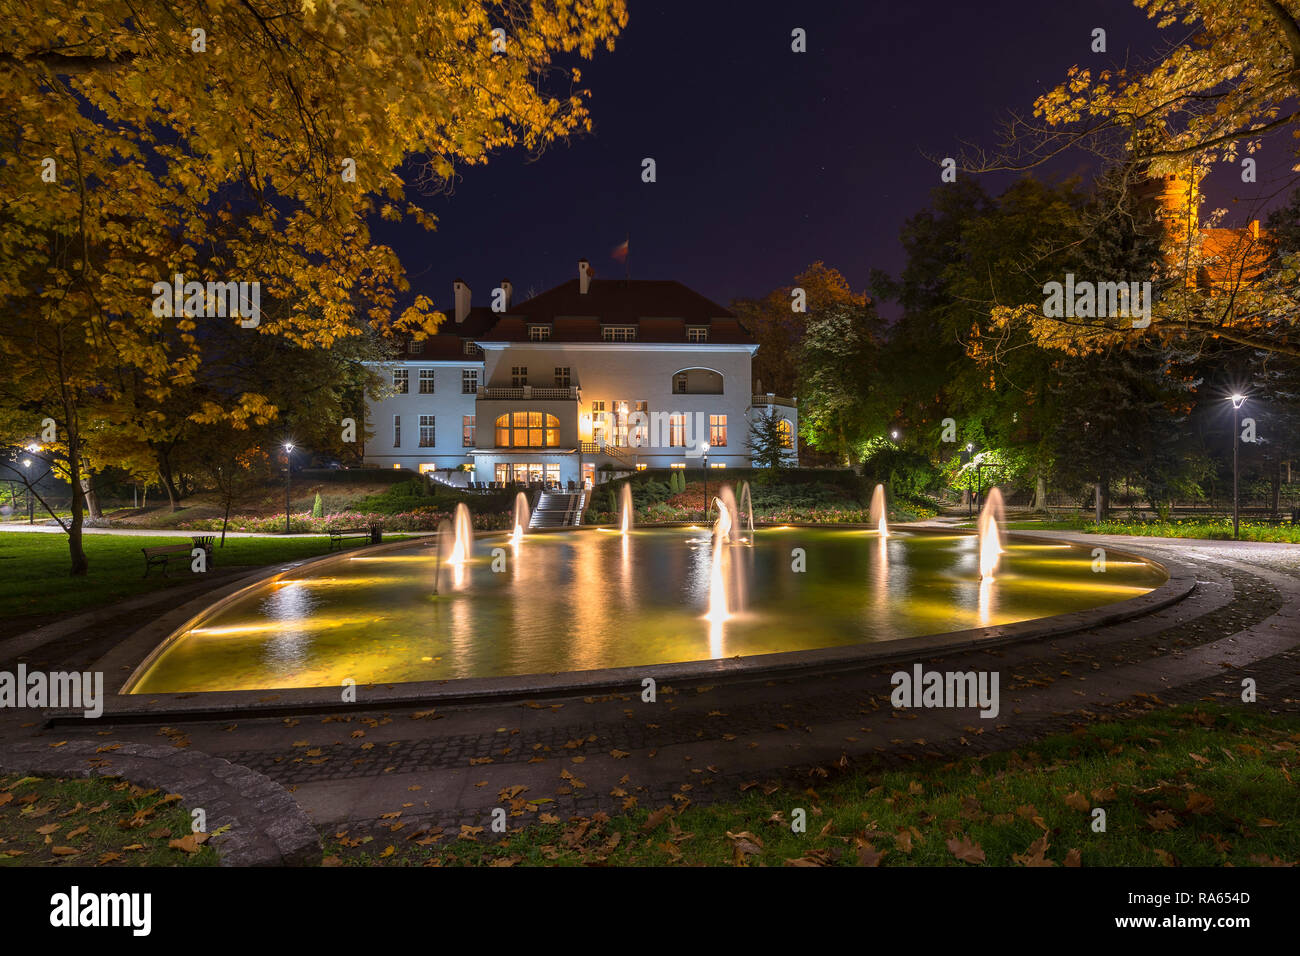 A lit fountain in a park full of autumn colors under the night sky. Poland, Olsztyn, park in the old town. - Stock Image